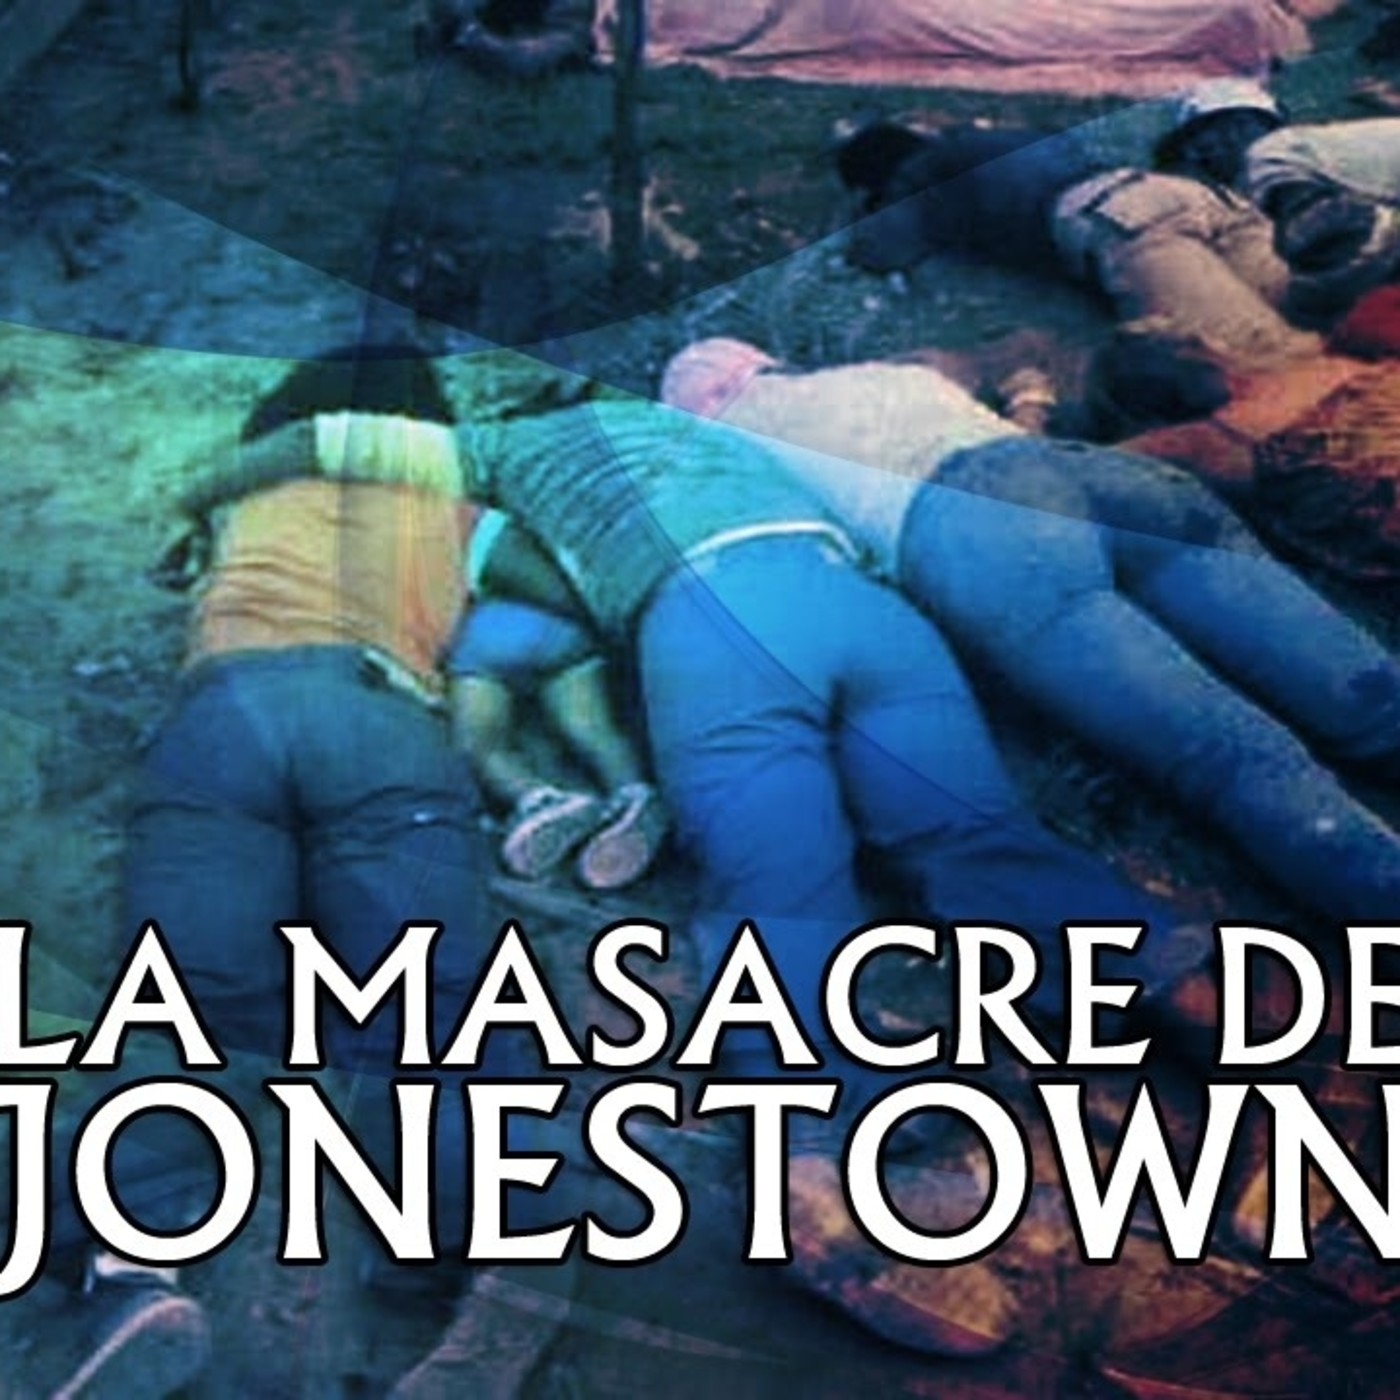 La masacre de Jonestown